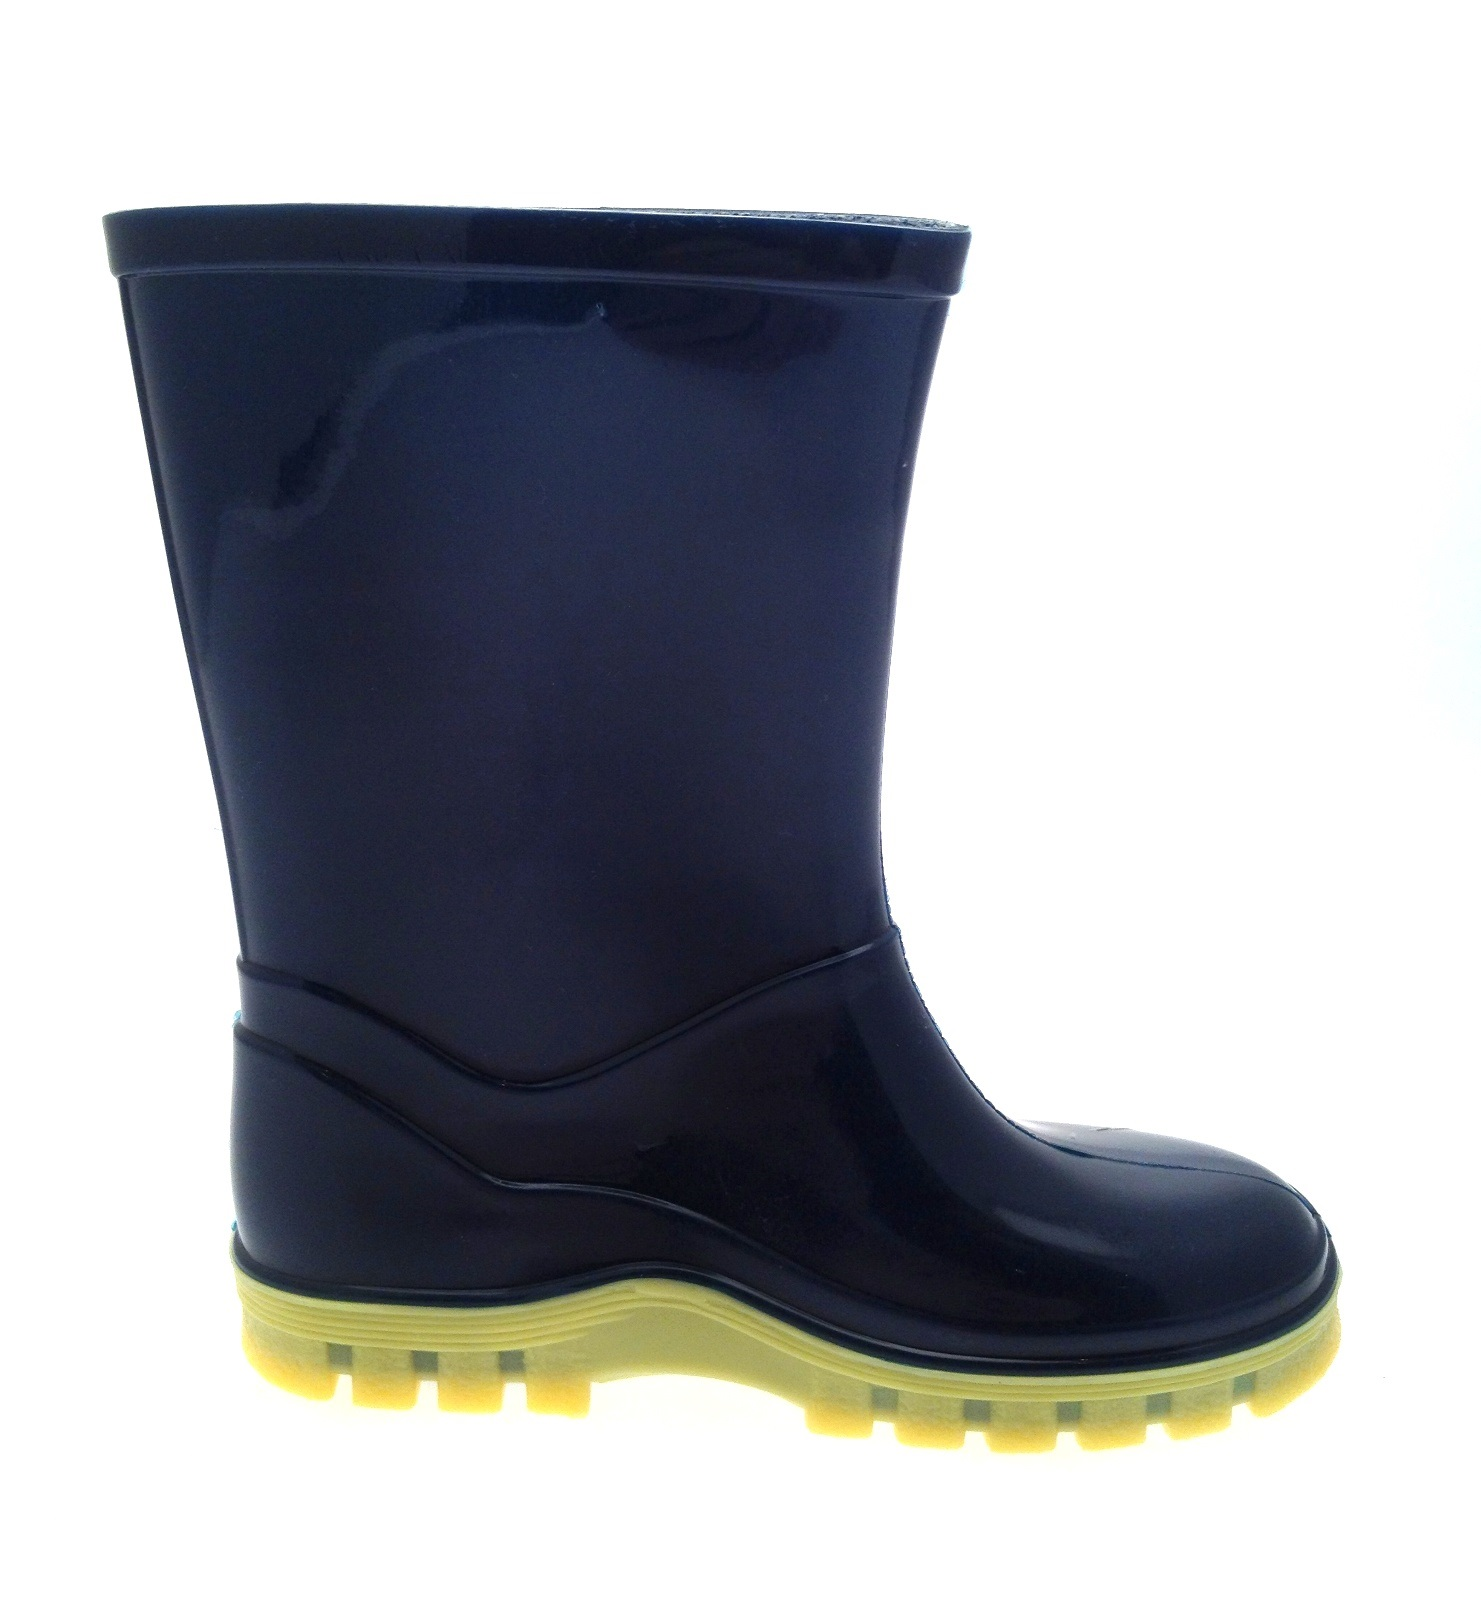 Demar Kids Boys Girls Wellies Rain Boots Warm Fleece-Lined Light Unisex Children Wellington Boots. £ - £ Prime. Boys Marvel Official Spiderman Wellies RAIN Boots Wellys Wellingtons UK Size £ 2 out of 5 stars 1. Muf03 Kids Boys Girls Wellington Boots Rainy Snow Wellies - Silver ions Ag+. £ - £ Prime.